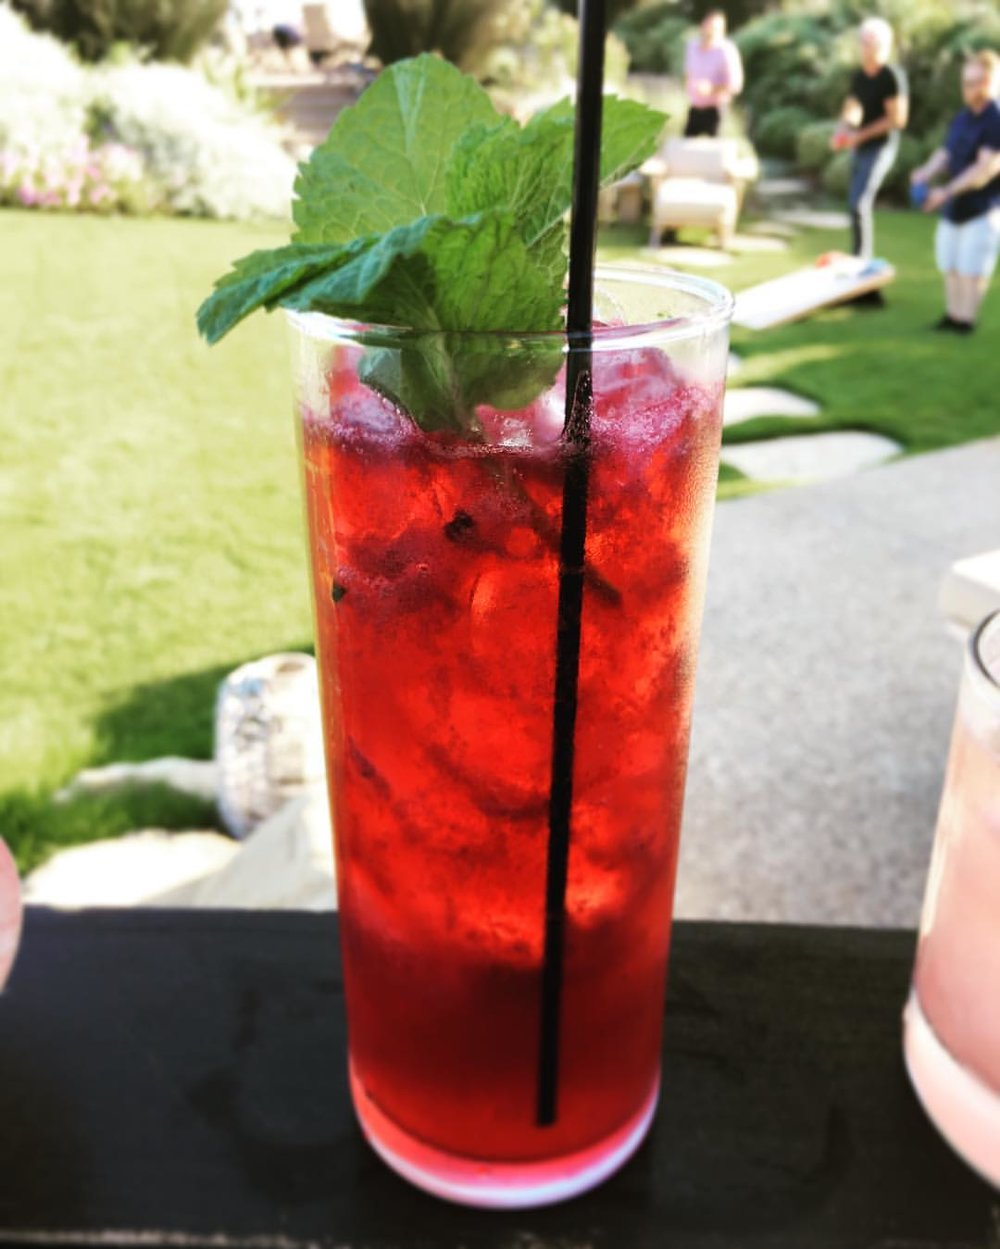 Berries & Twigs  Vodka  ● Blackberries ● Mint ● Raspberry ● House Grenadine ● Lemon ● Bubbles